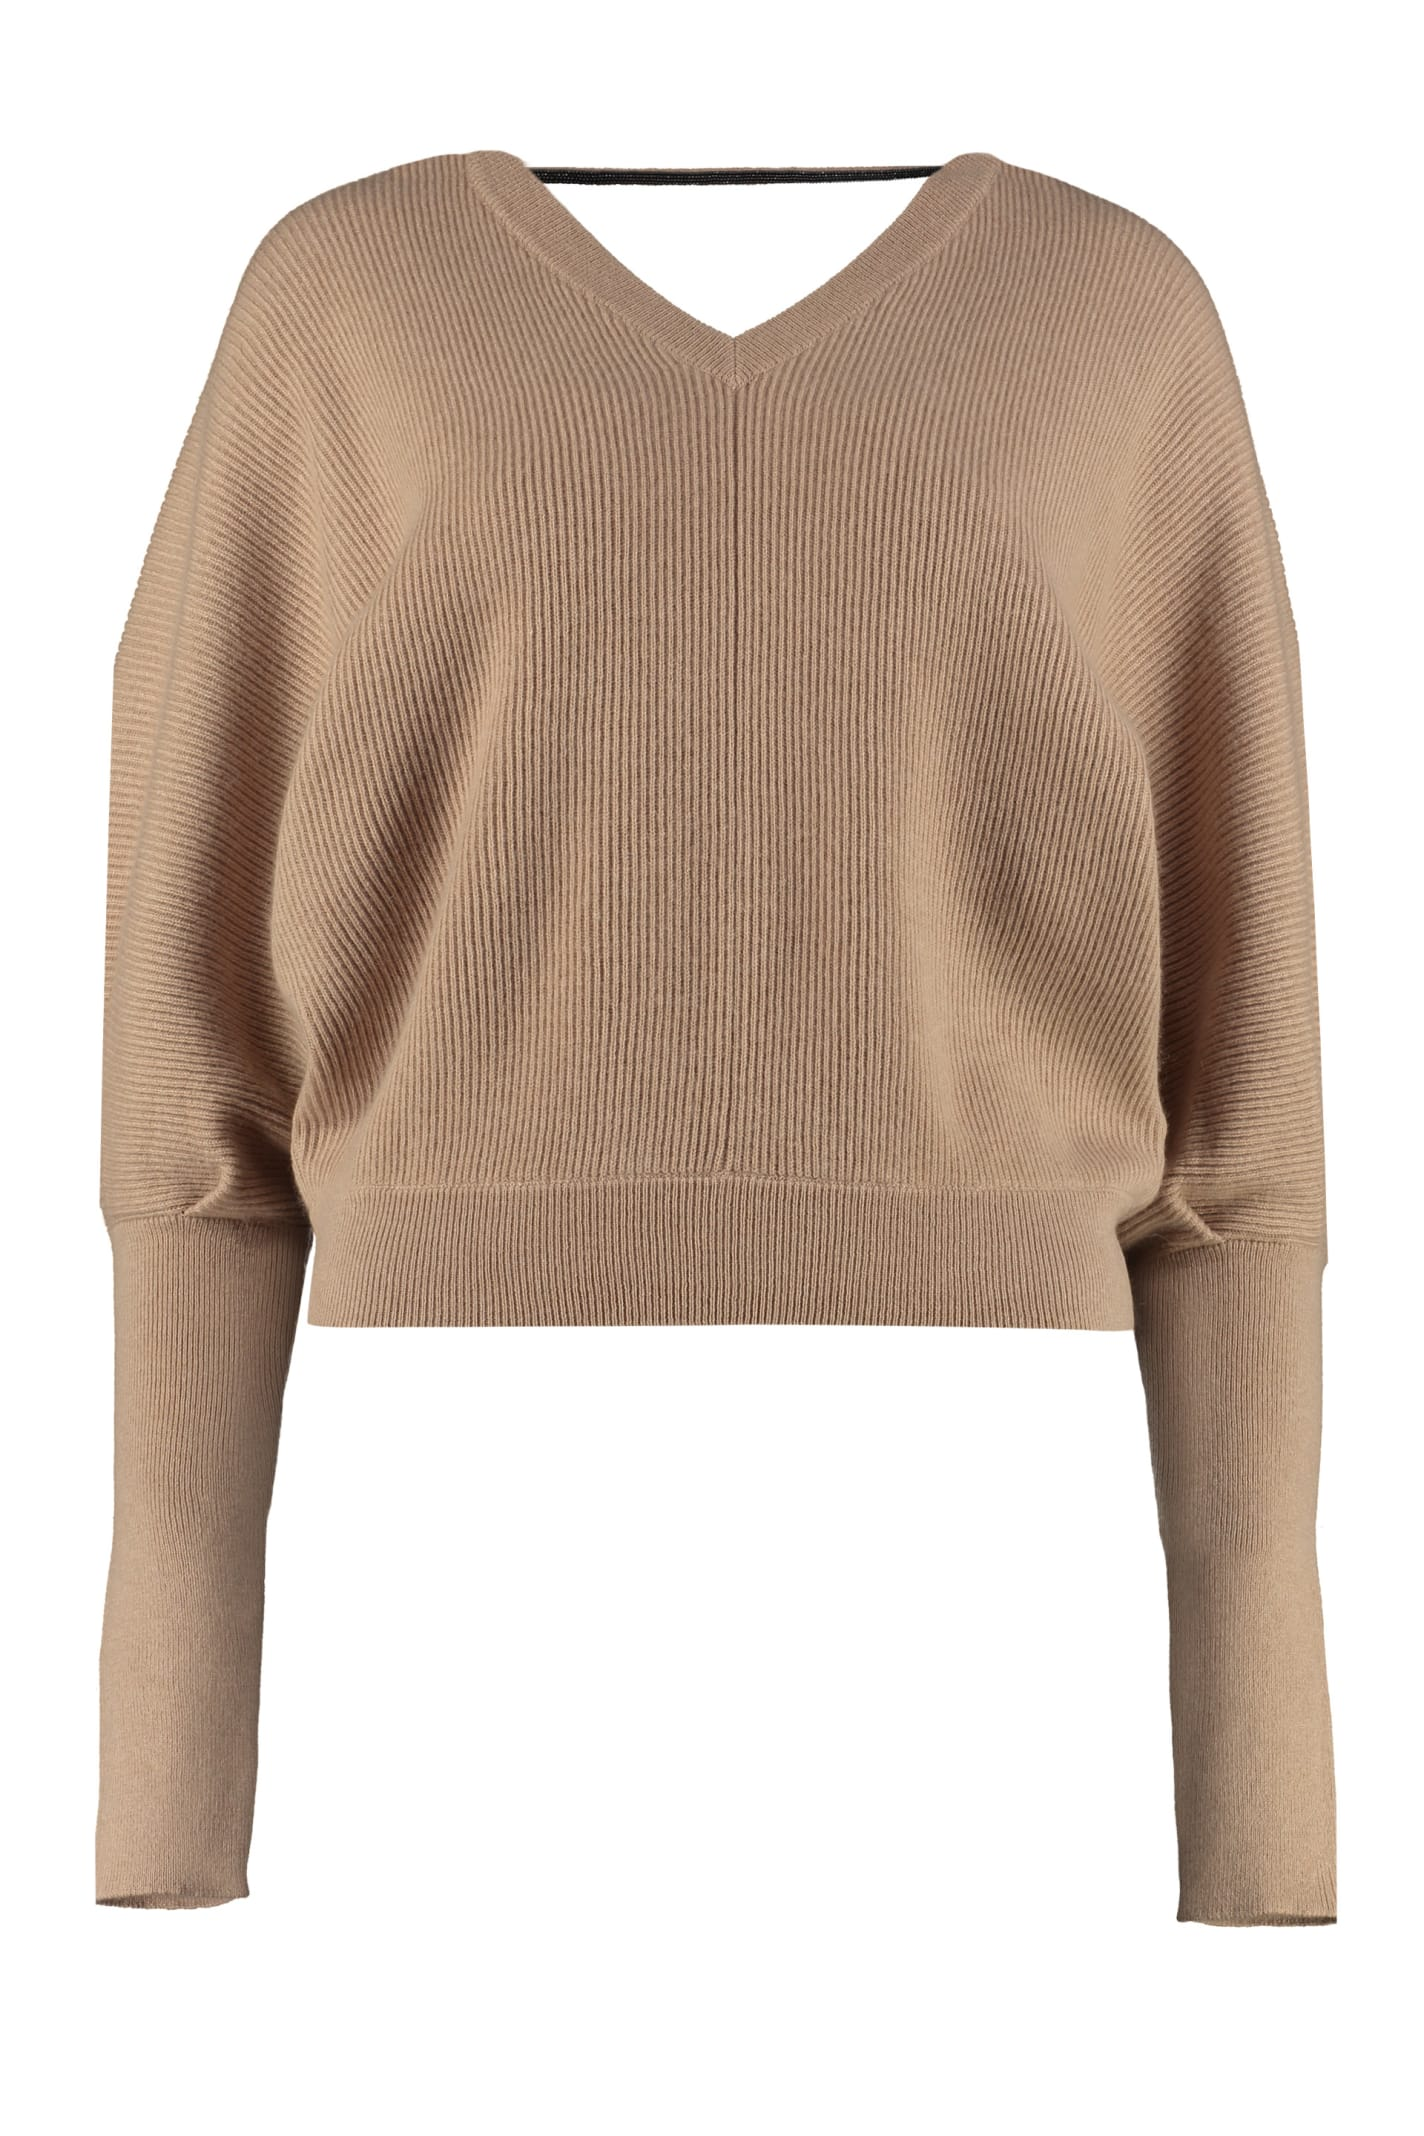 size 40 50a54 51ac7 Best price on the market at italist | Brunello Cucinelli Brunello Cucinelli  Ribbed Cashmere Pullover